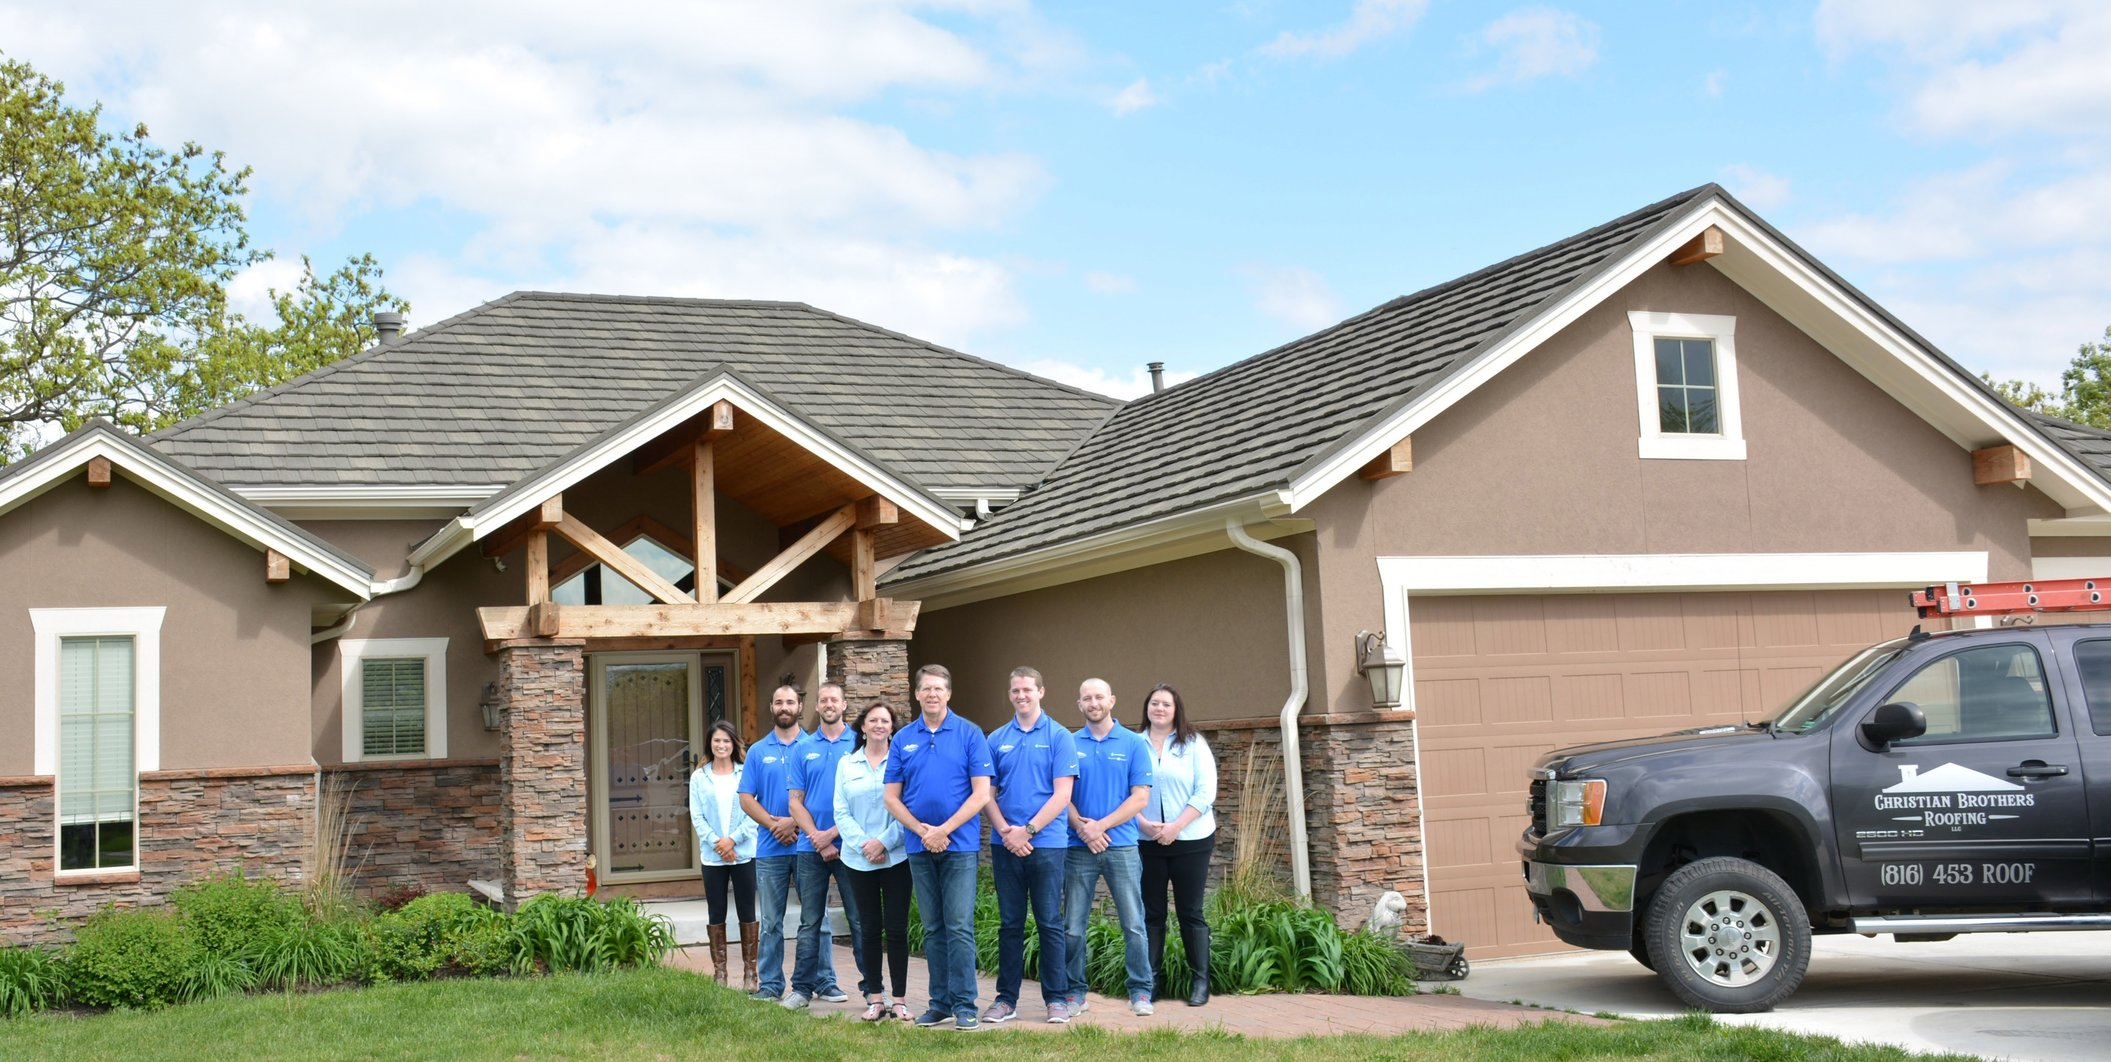 Kansas City S Best Roofing Company Christian Brothers